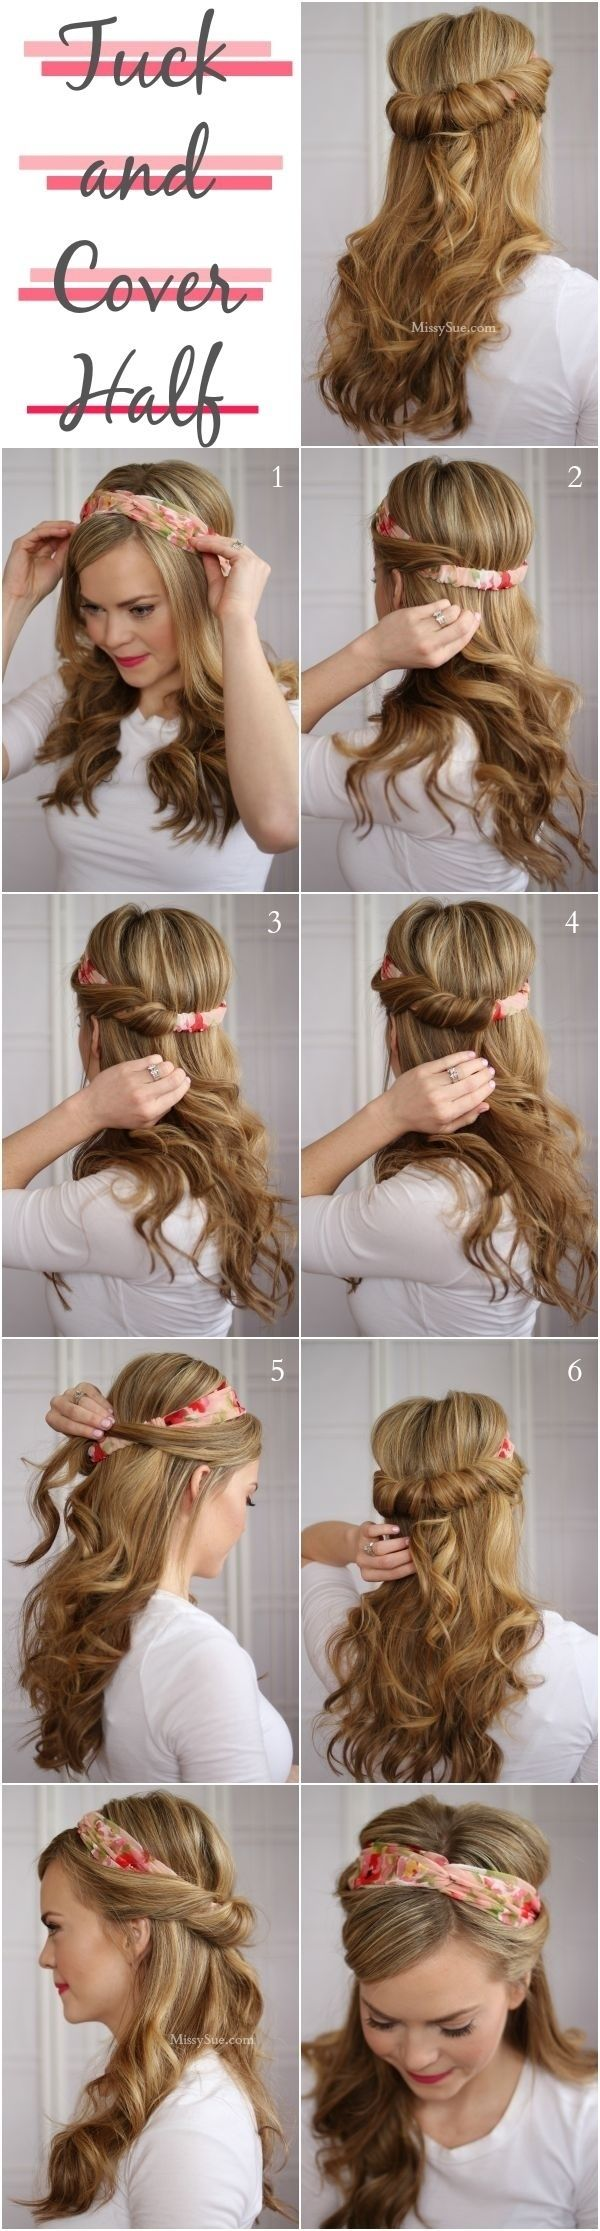 Looking for a quick style to get you out the door and on with your life? Check these ten hair hacks!